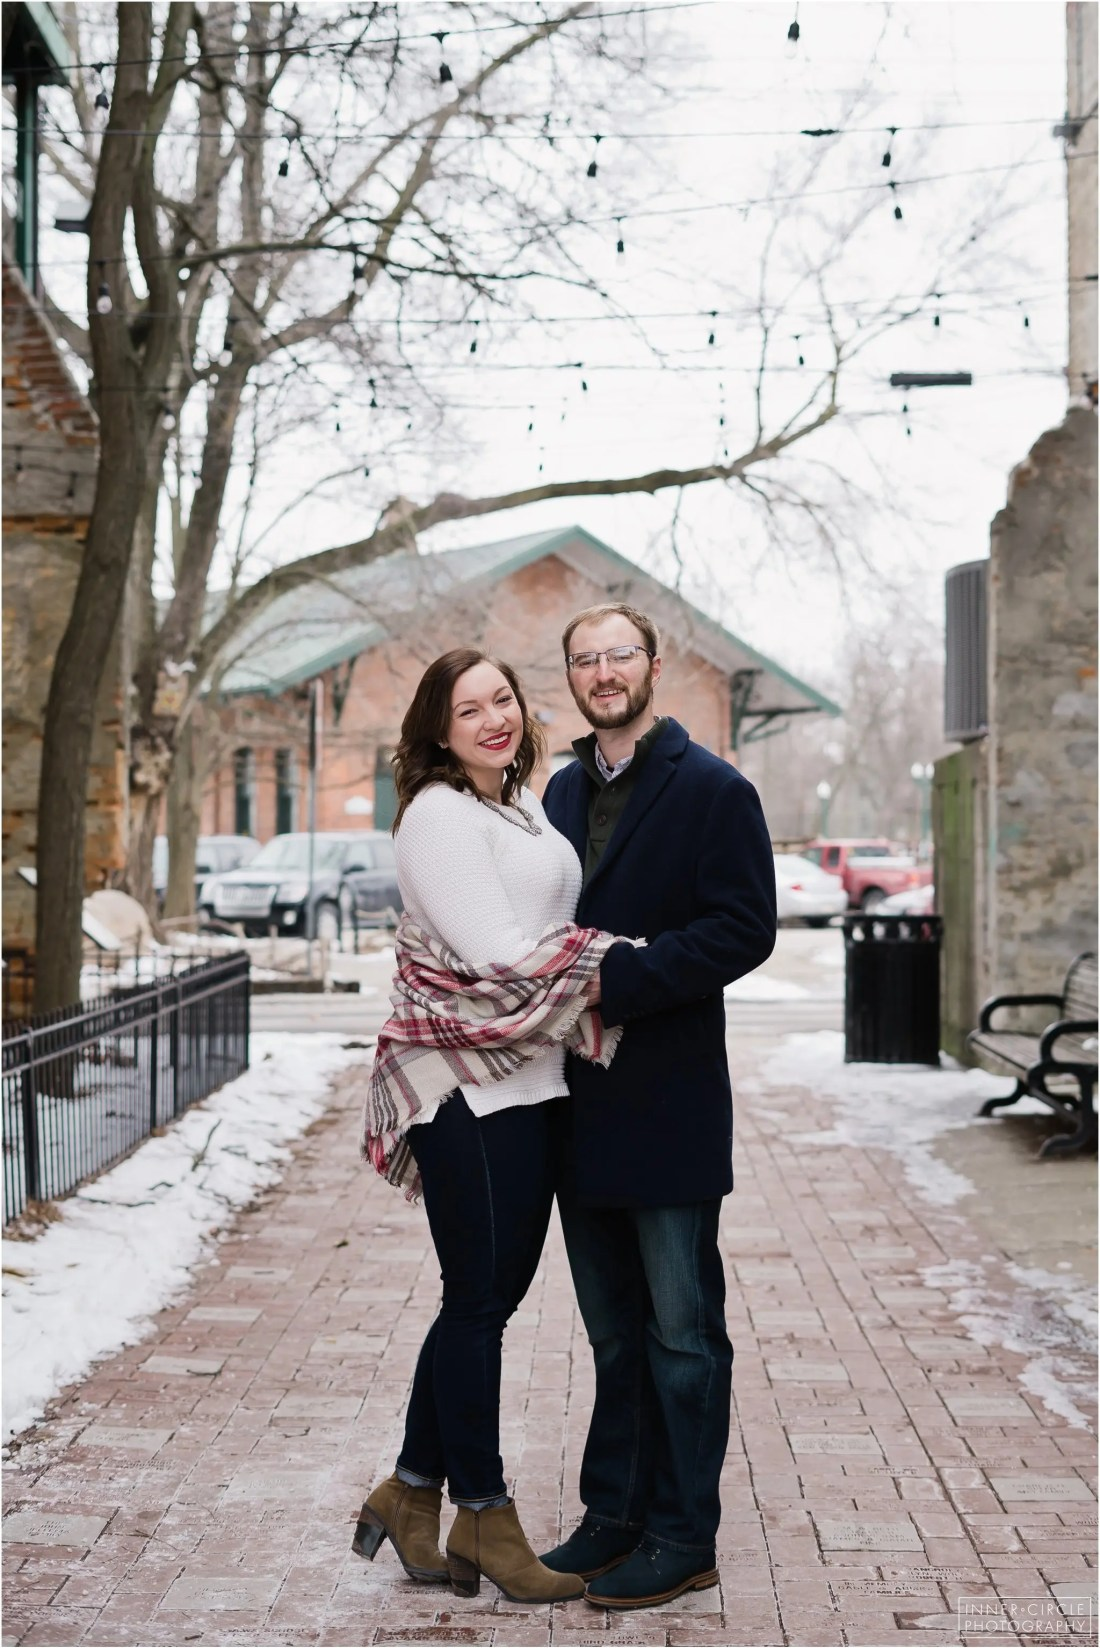 lukelauren_ENGAGED_InnerCirclePhoto_002 Luke + Lauren :: Ypsilanti Engagement Session :: 2019